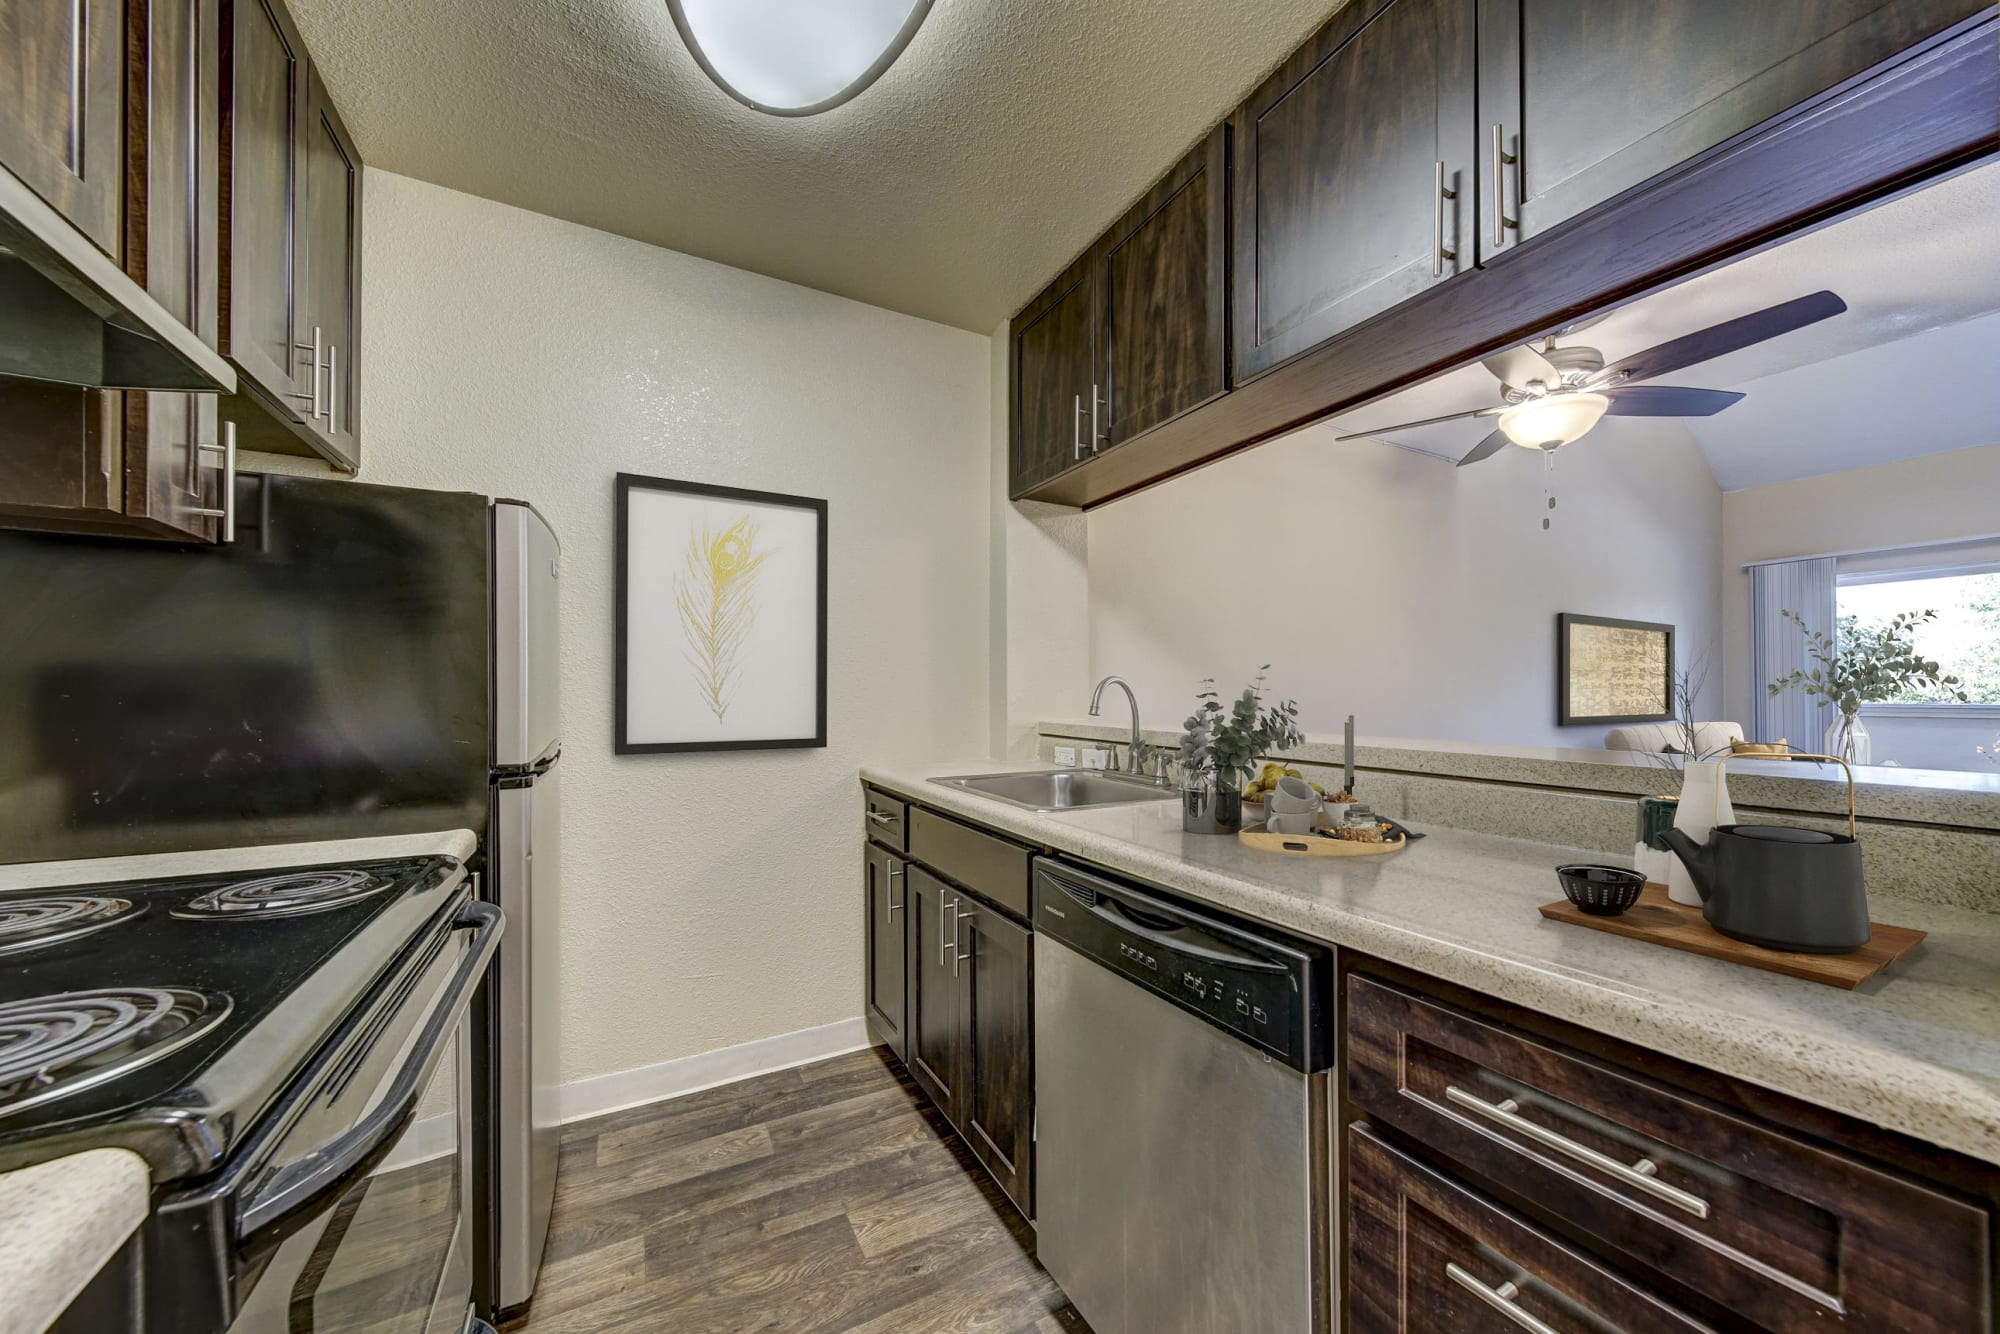 Renovated Brown Kitchen with stainless steel appliances at The Timbers Apartments in Hayward, CA